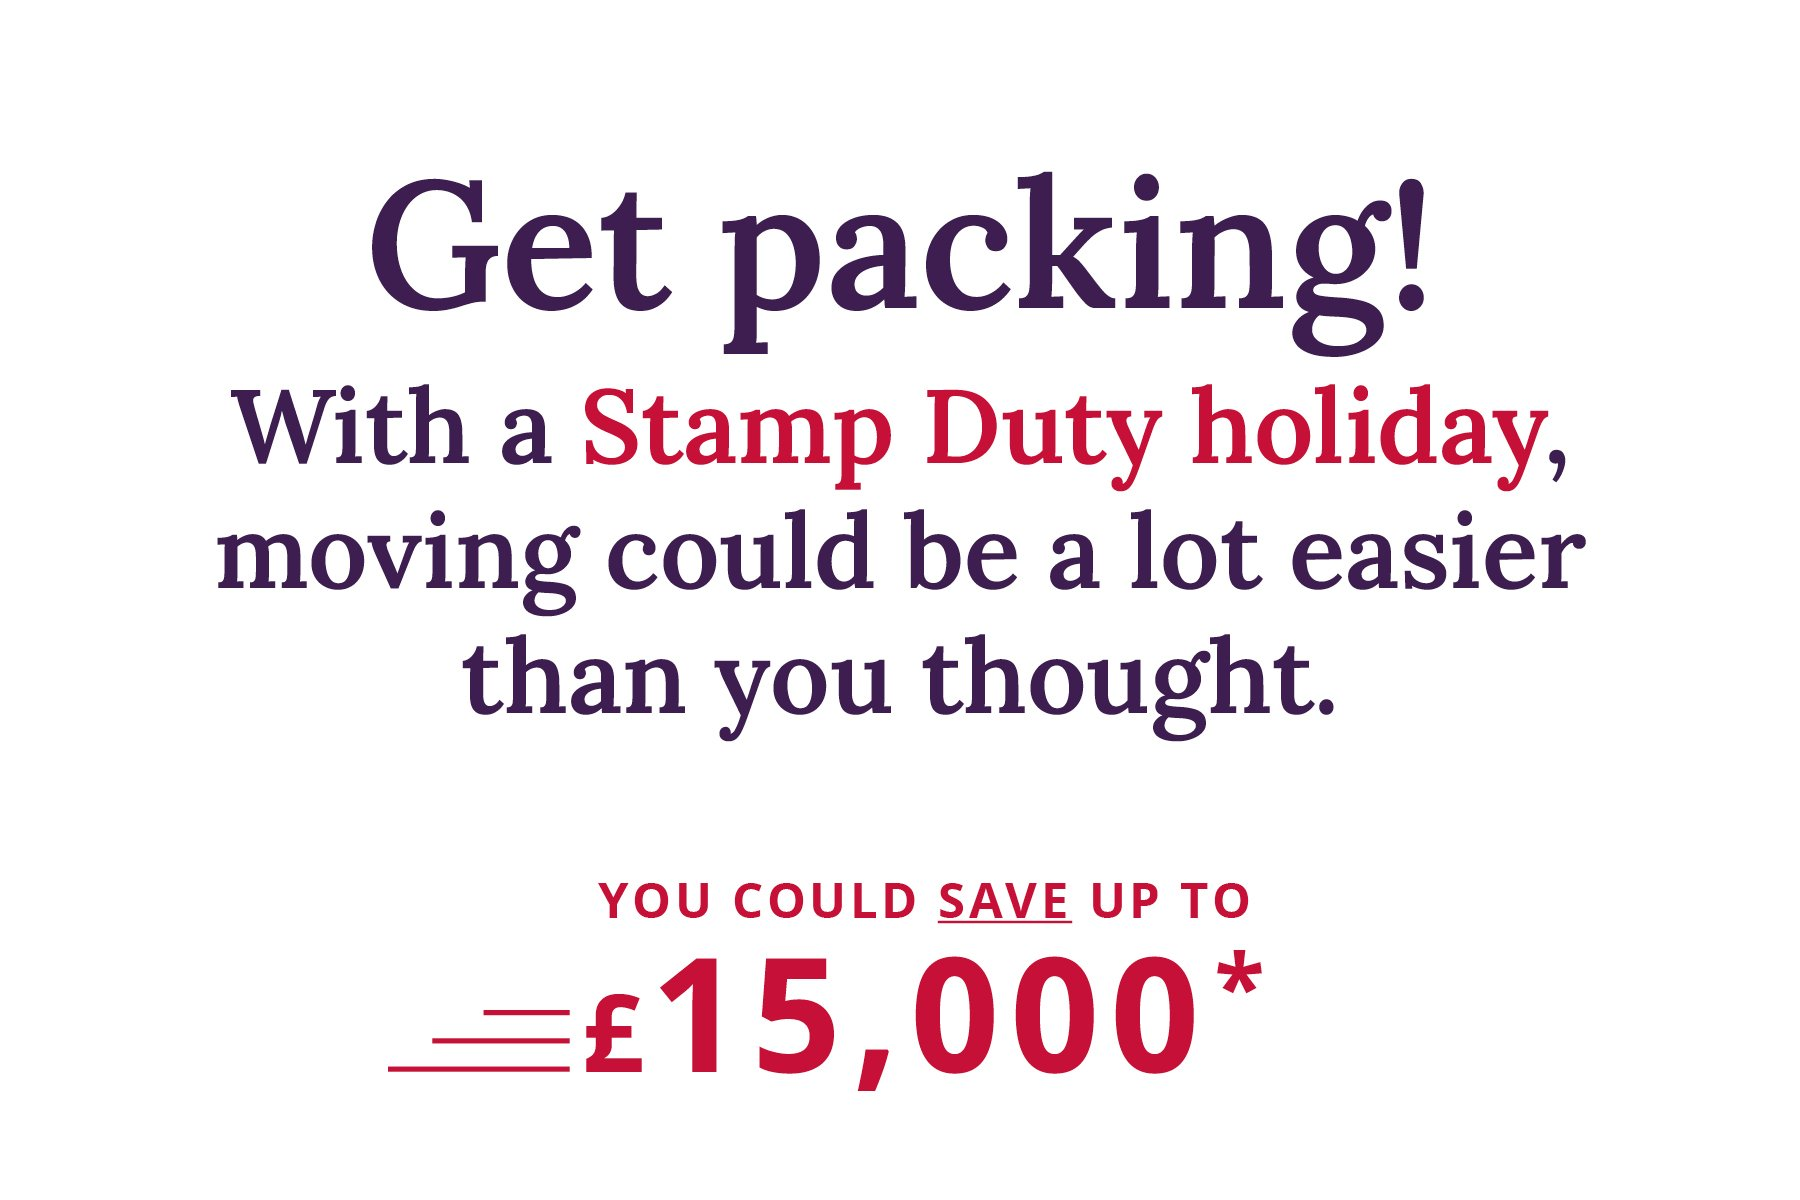 62005_TWUK - Stamp duty holiday - TW Carousel graphic - 1800x1200